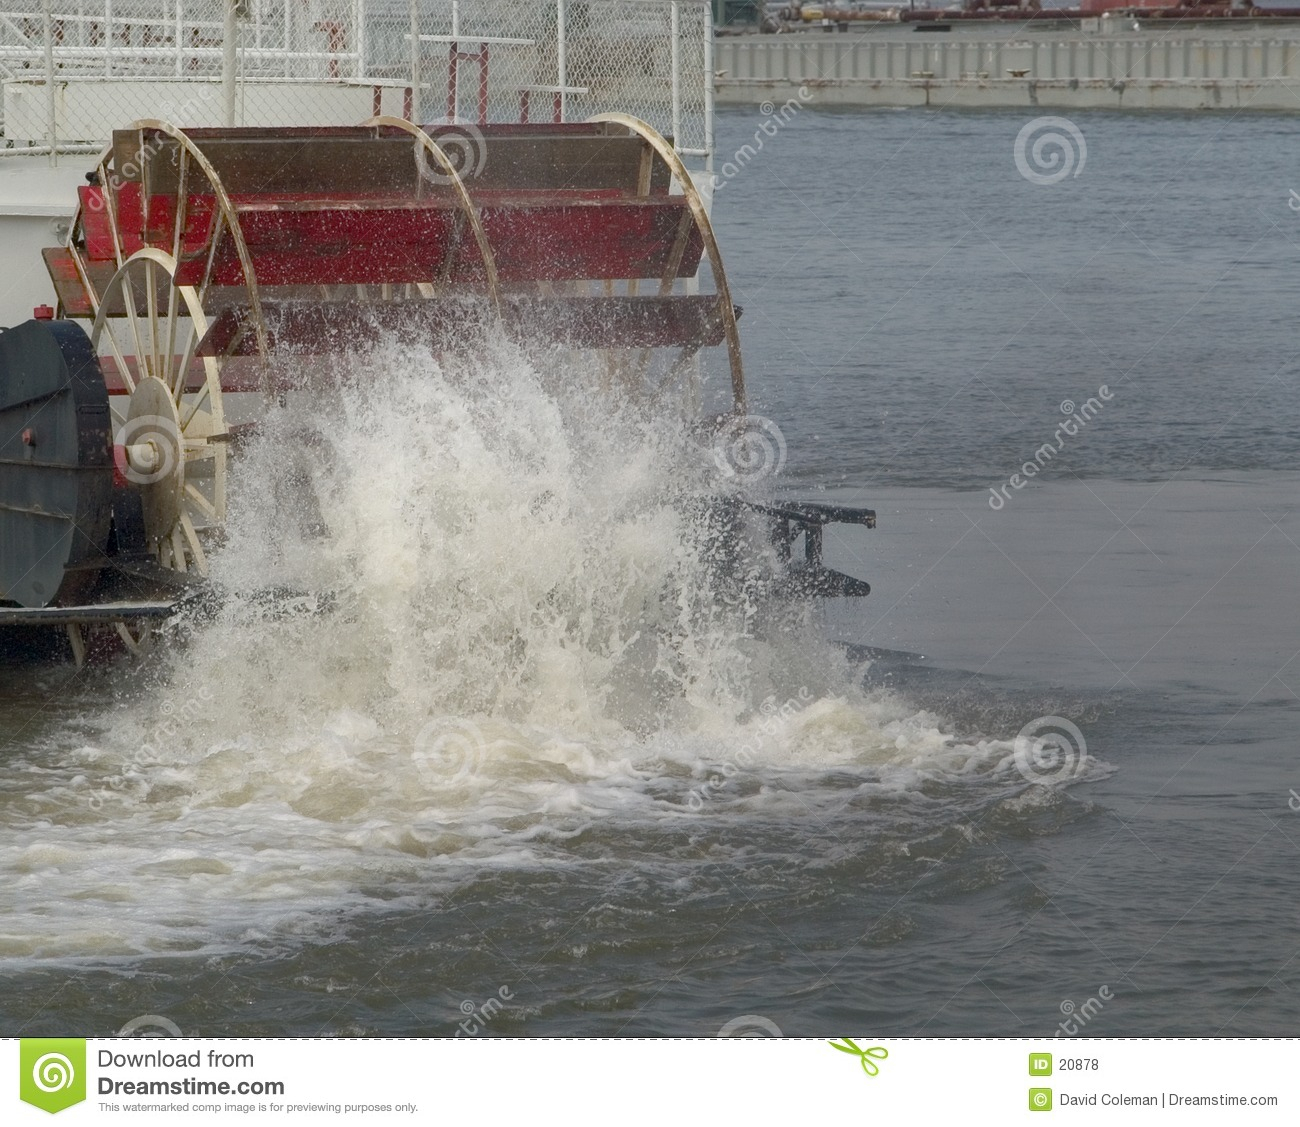 paddle wheeler on the Ohio River churns the water while driving the ...